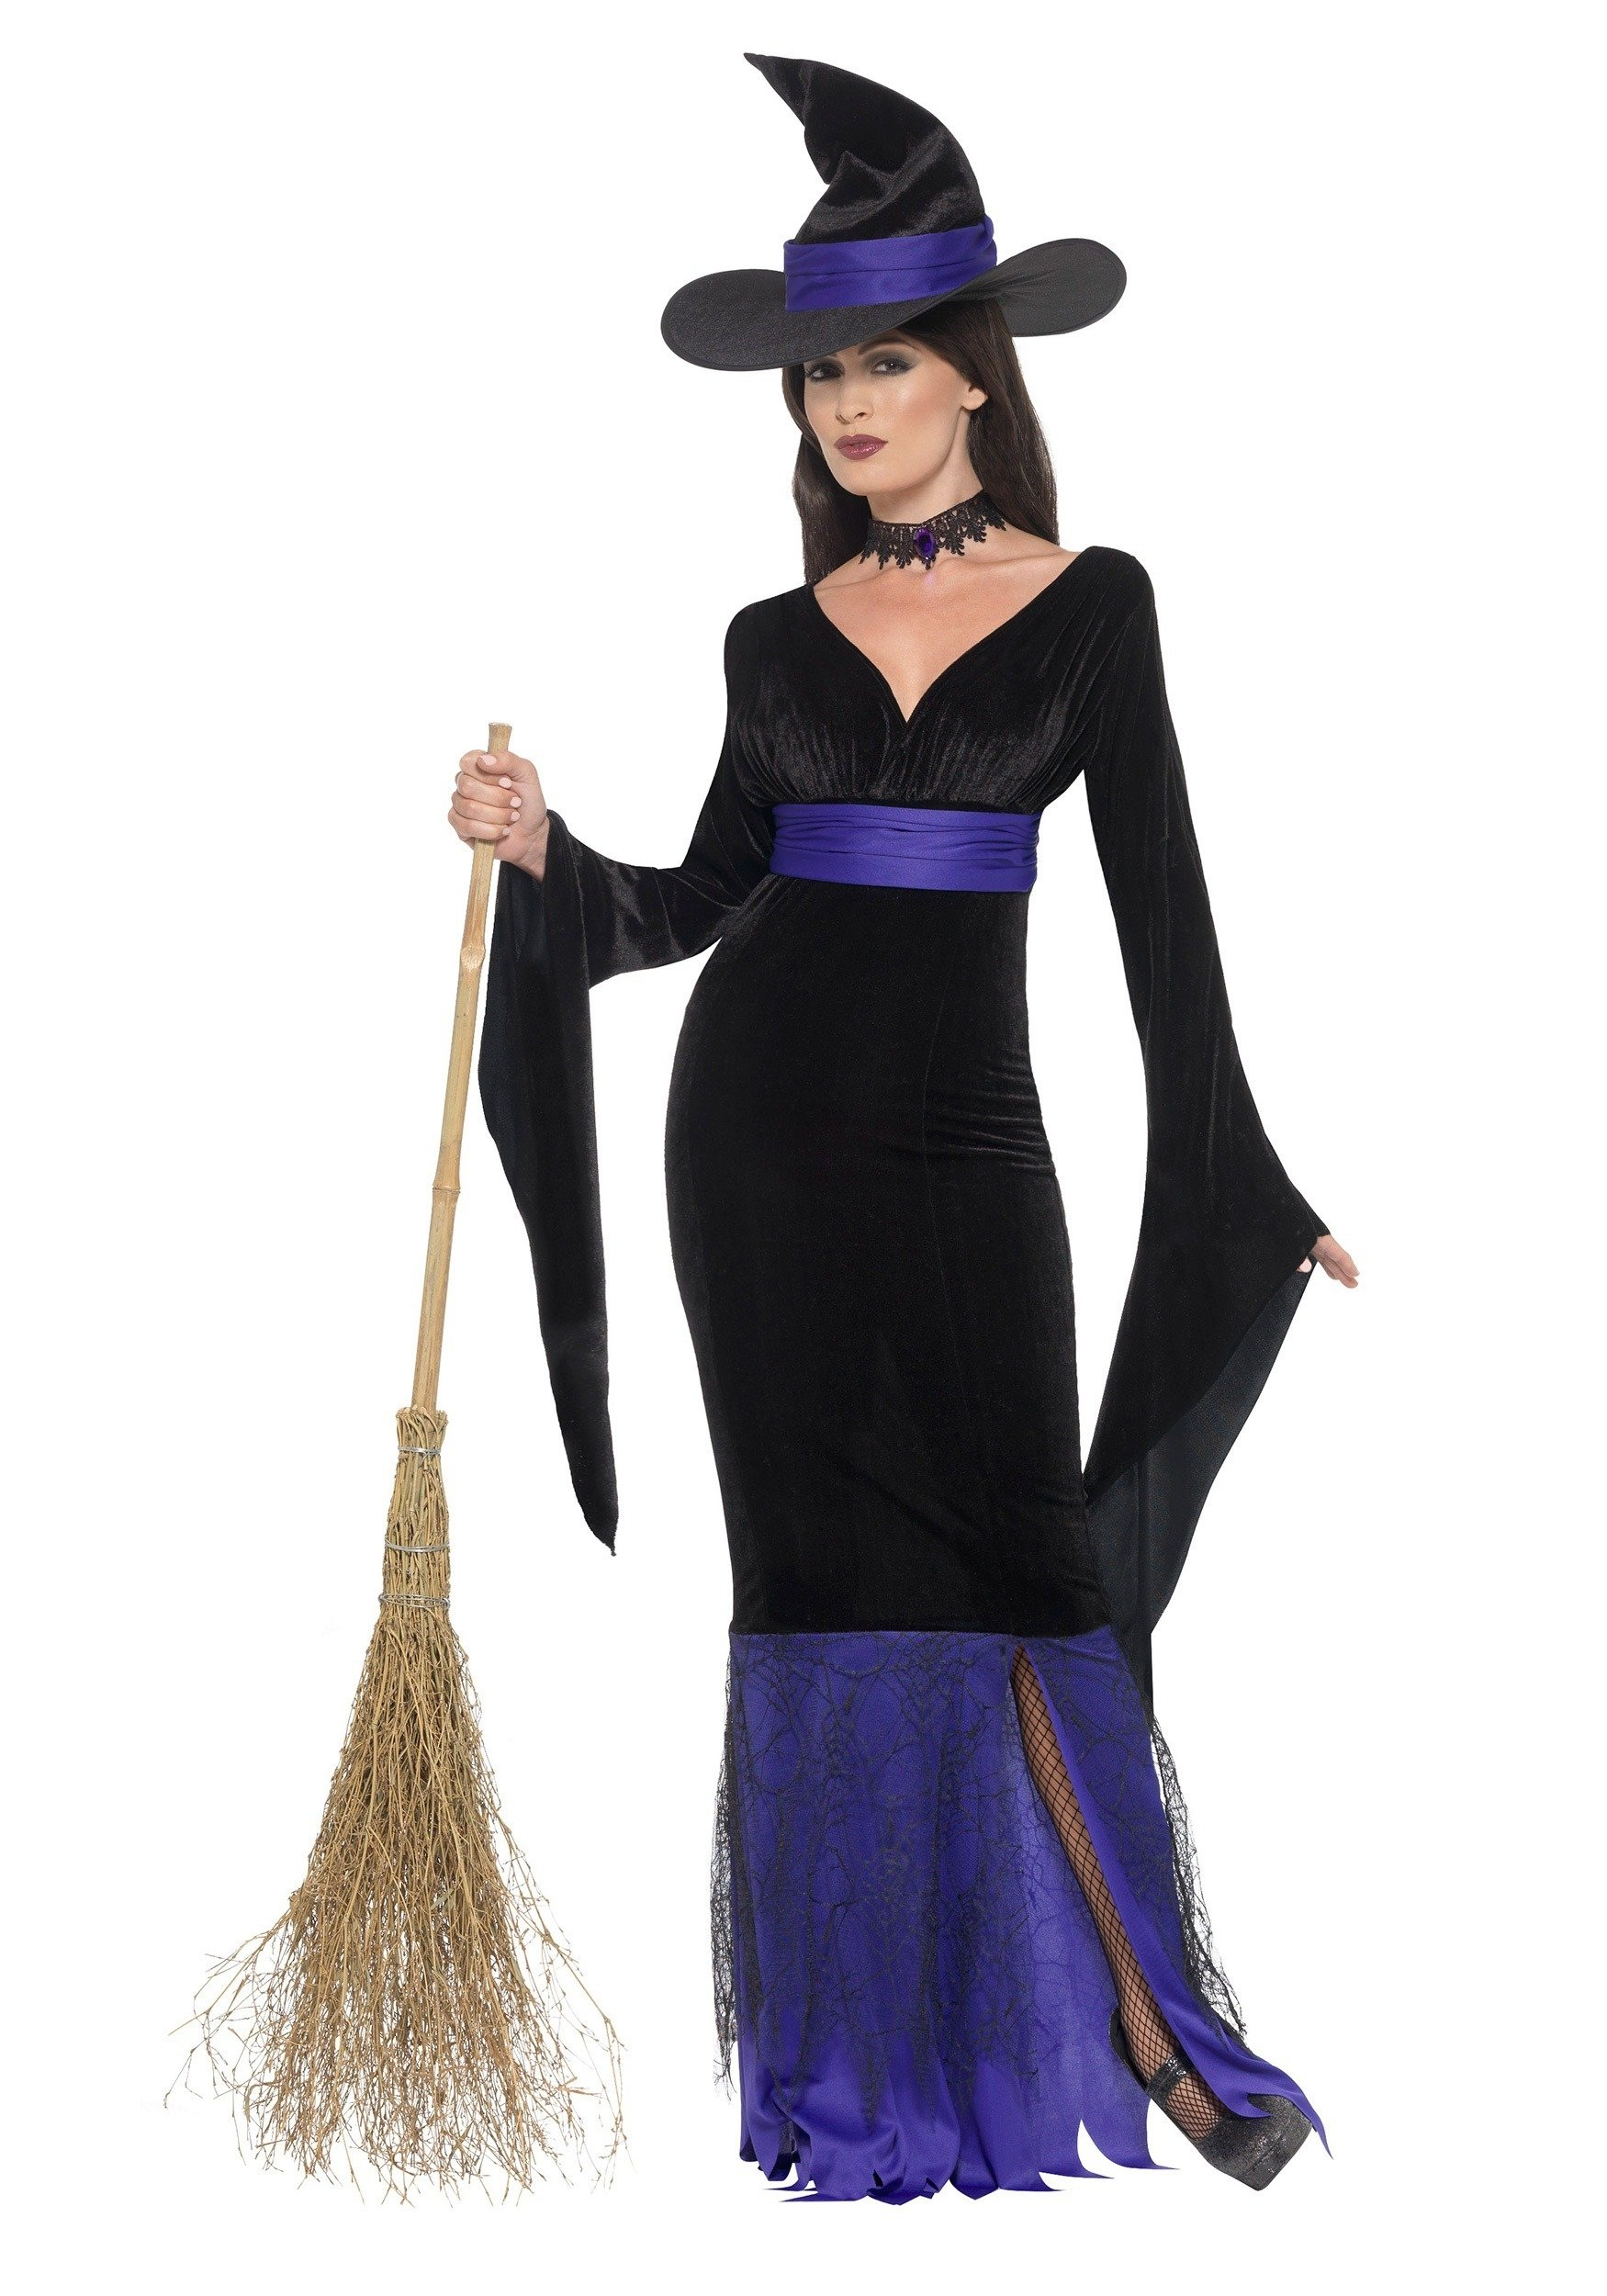 10 Wonderful Witch Costume Ideas For Women womens glamorous witch costume 2020